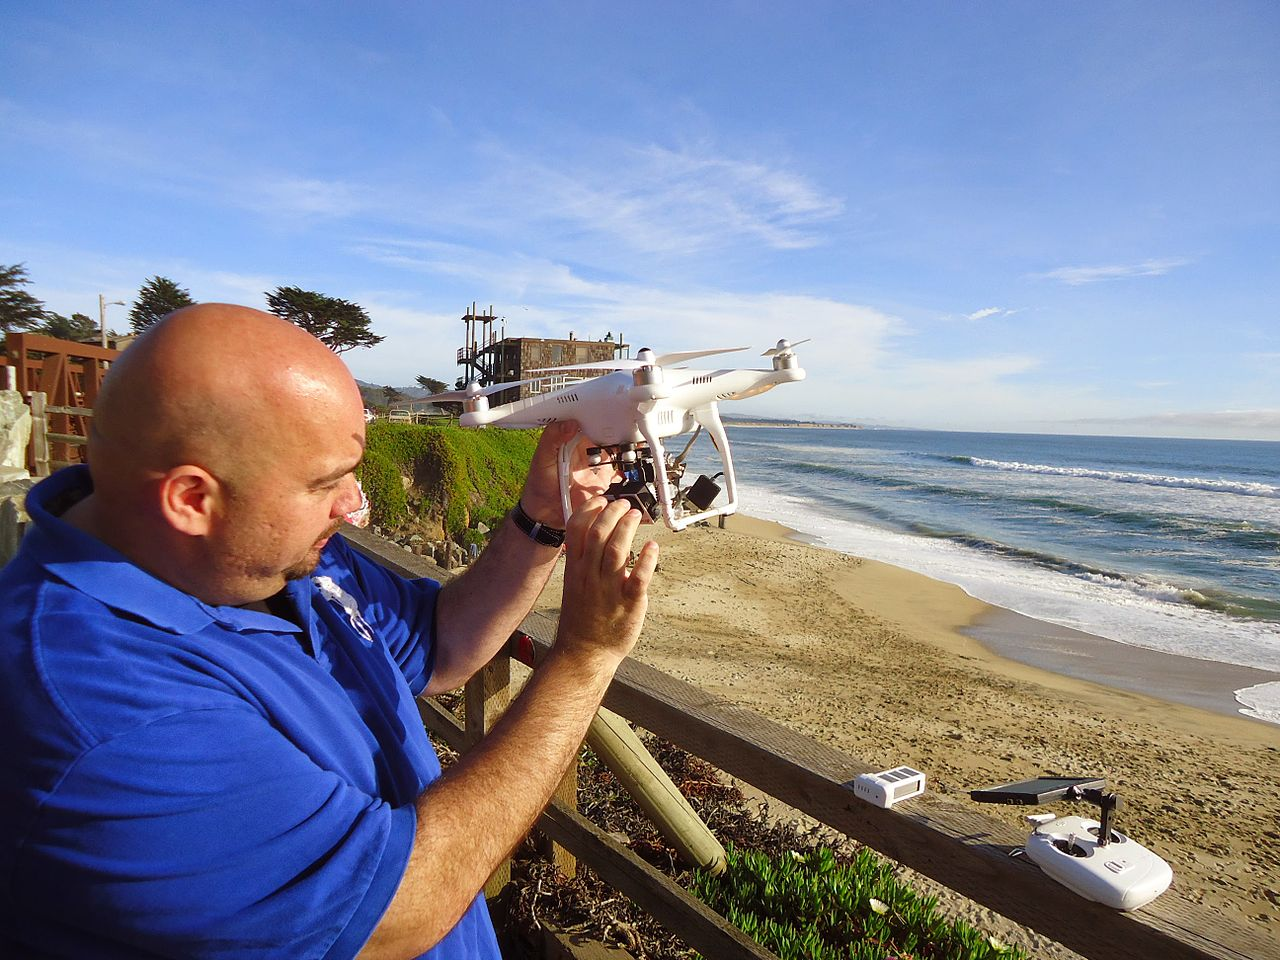 Drone Pilots No Longer Have to Register